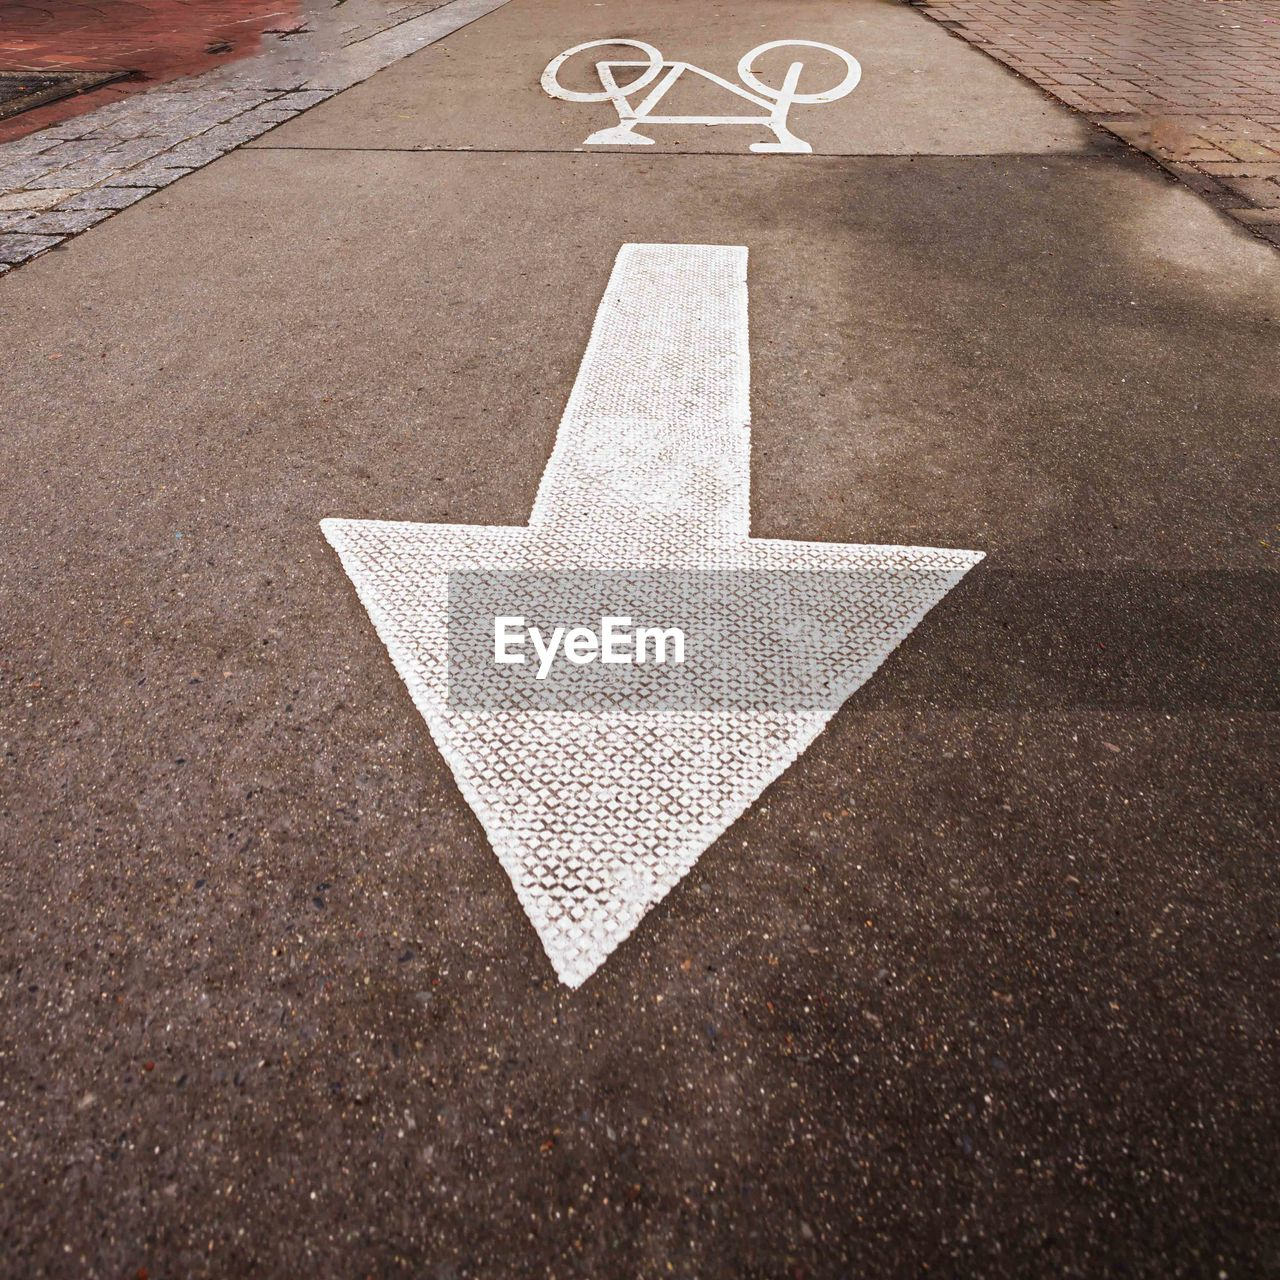 arrow symbol, sign, direction, symbol, communication, no people, transportation, guidance, road, city, road marking, street, footpath, marking, the way forward, directional sign, day, outdoors, asphalt, sidewalk